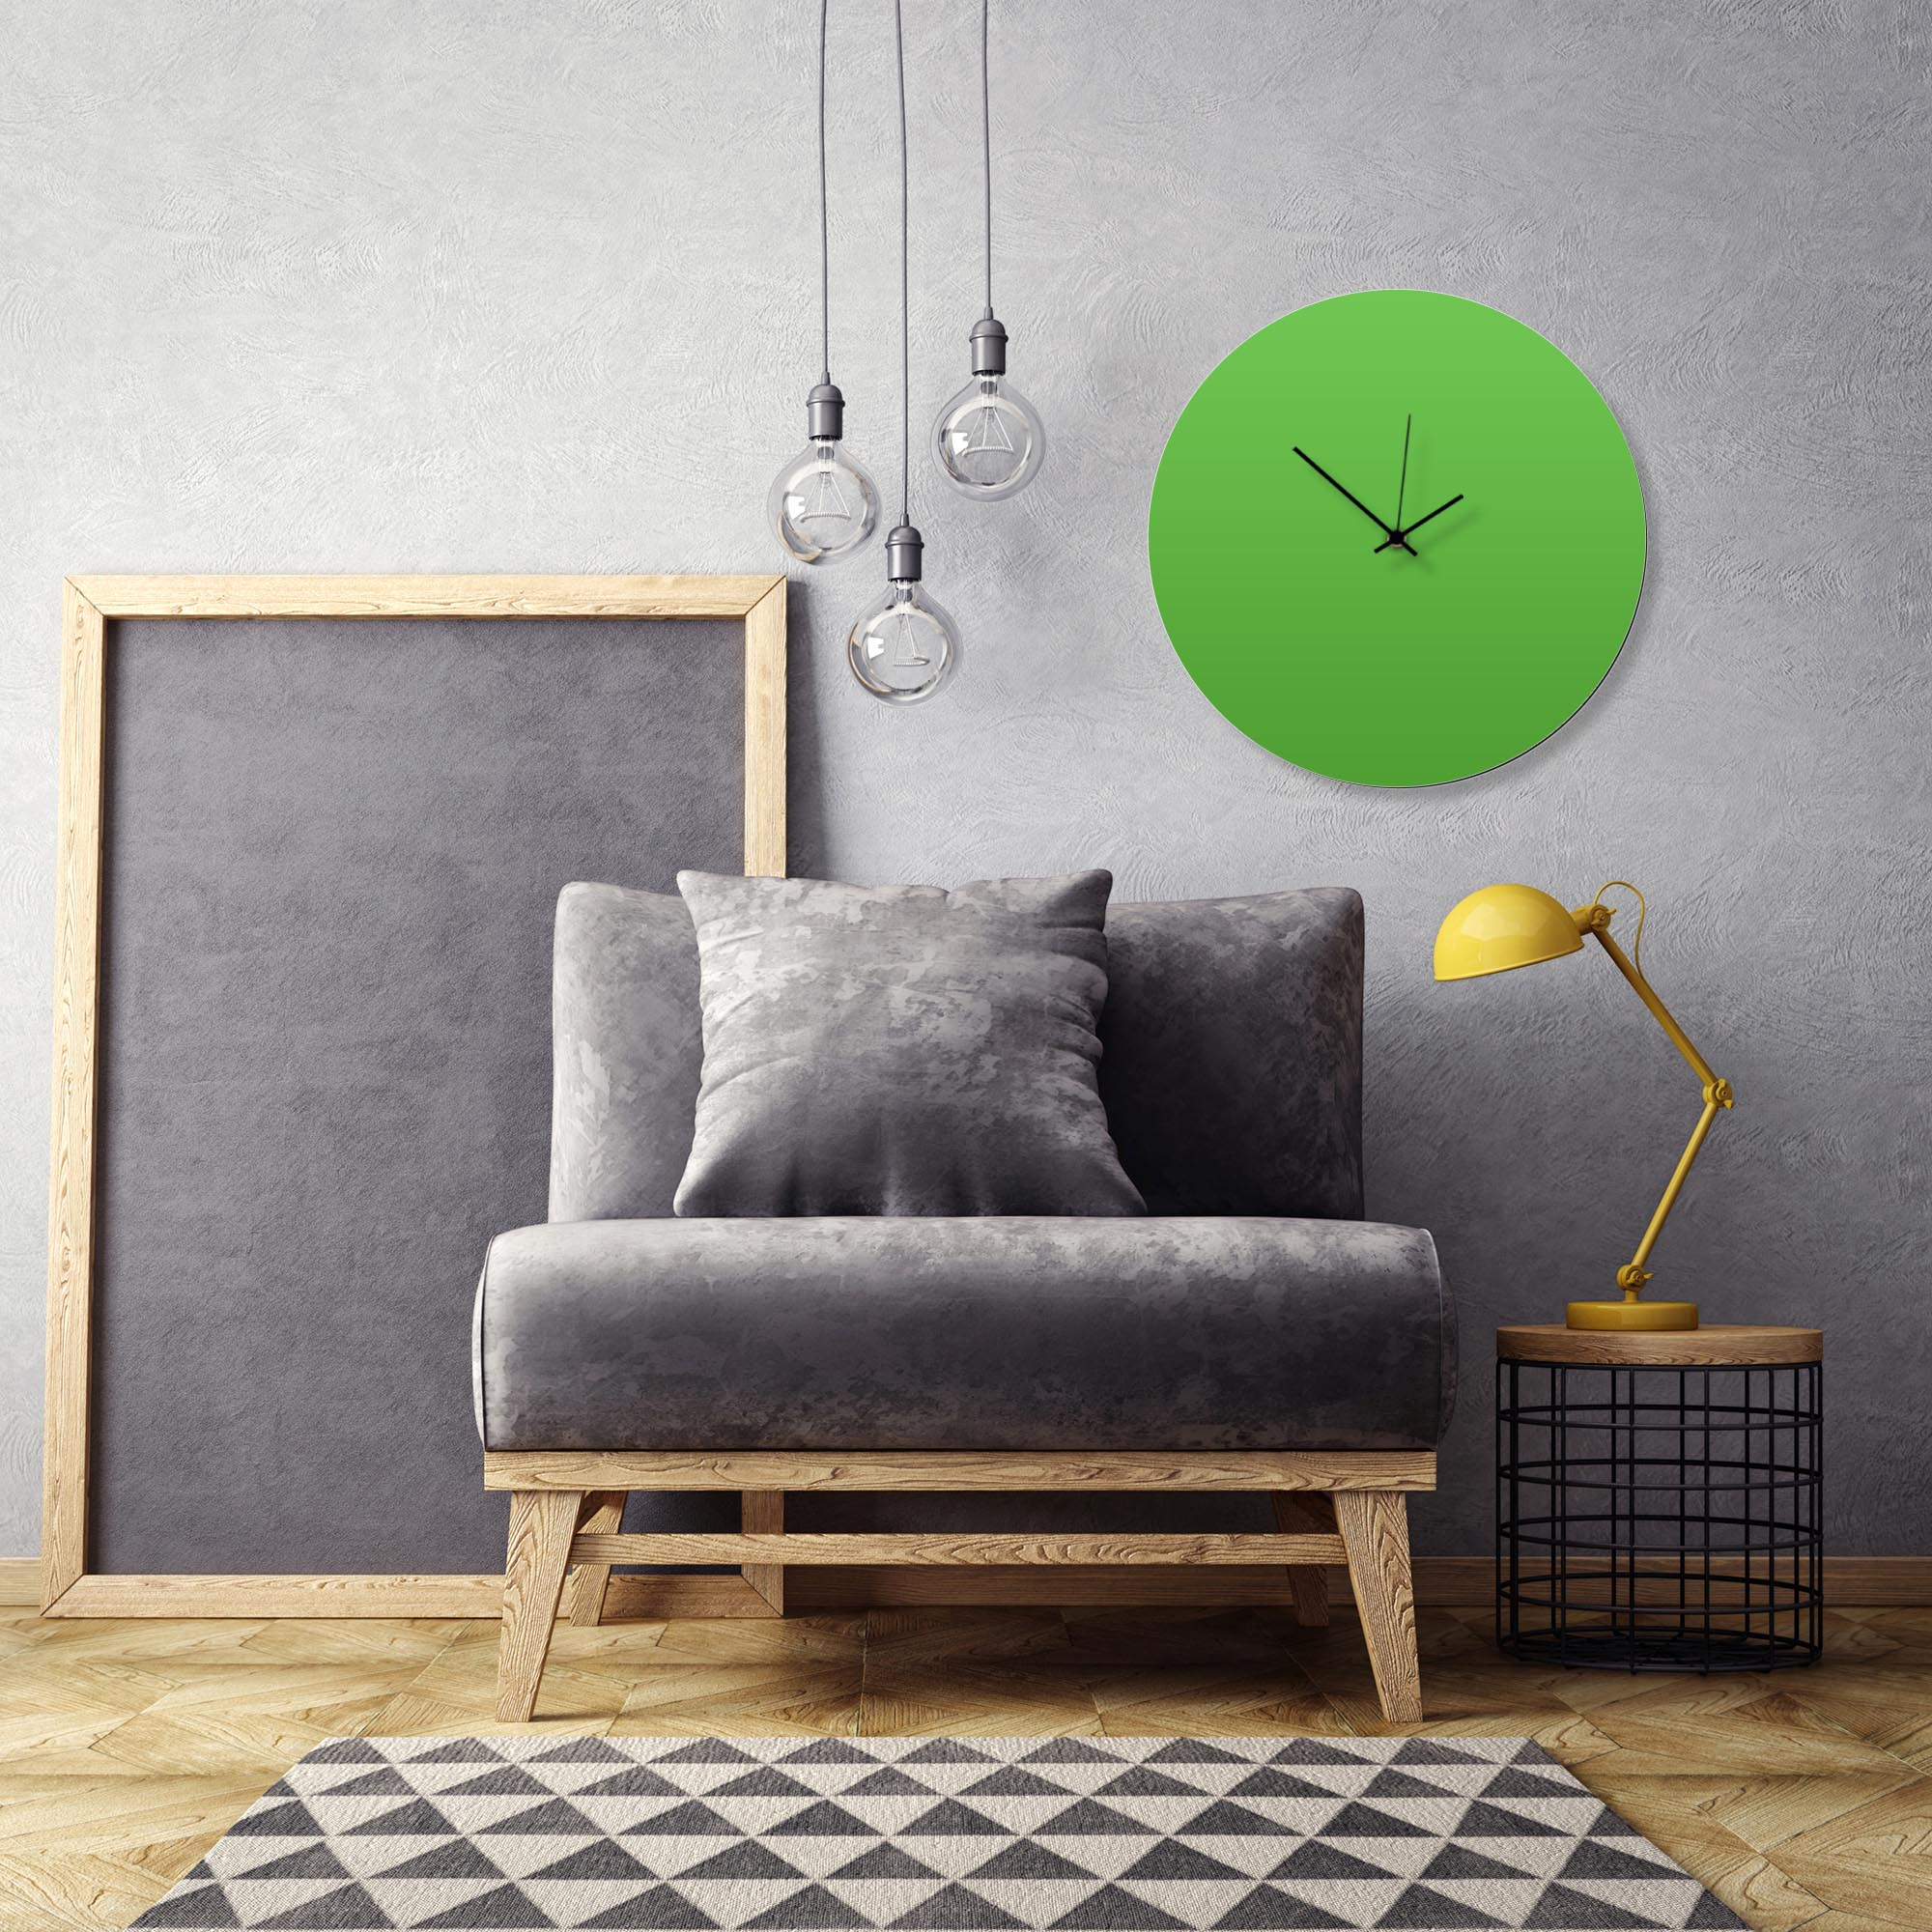 Greenout Black Circle Clock Large by Adam Schwoeppe Contemporary Clock on Aluminum Polymetal - Alternate View 1